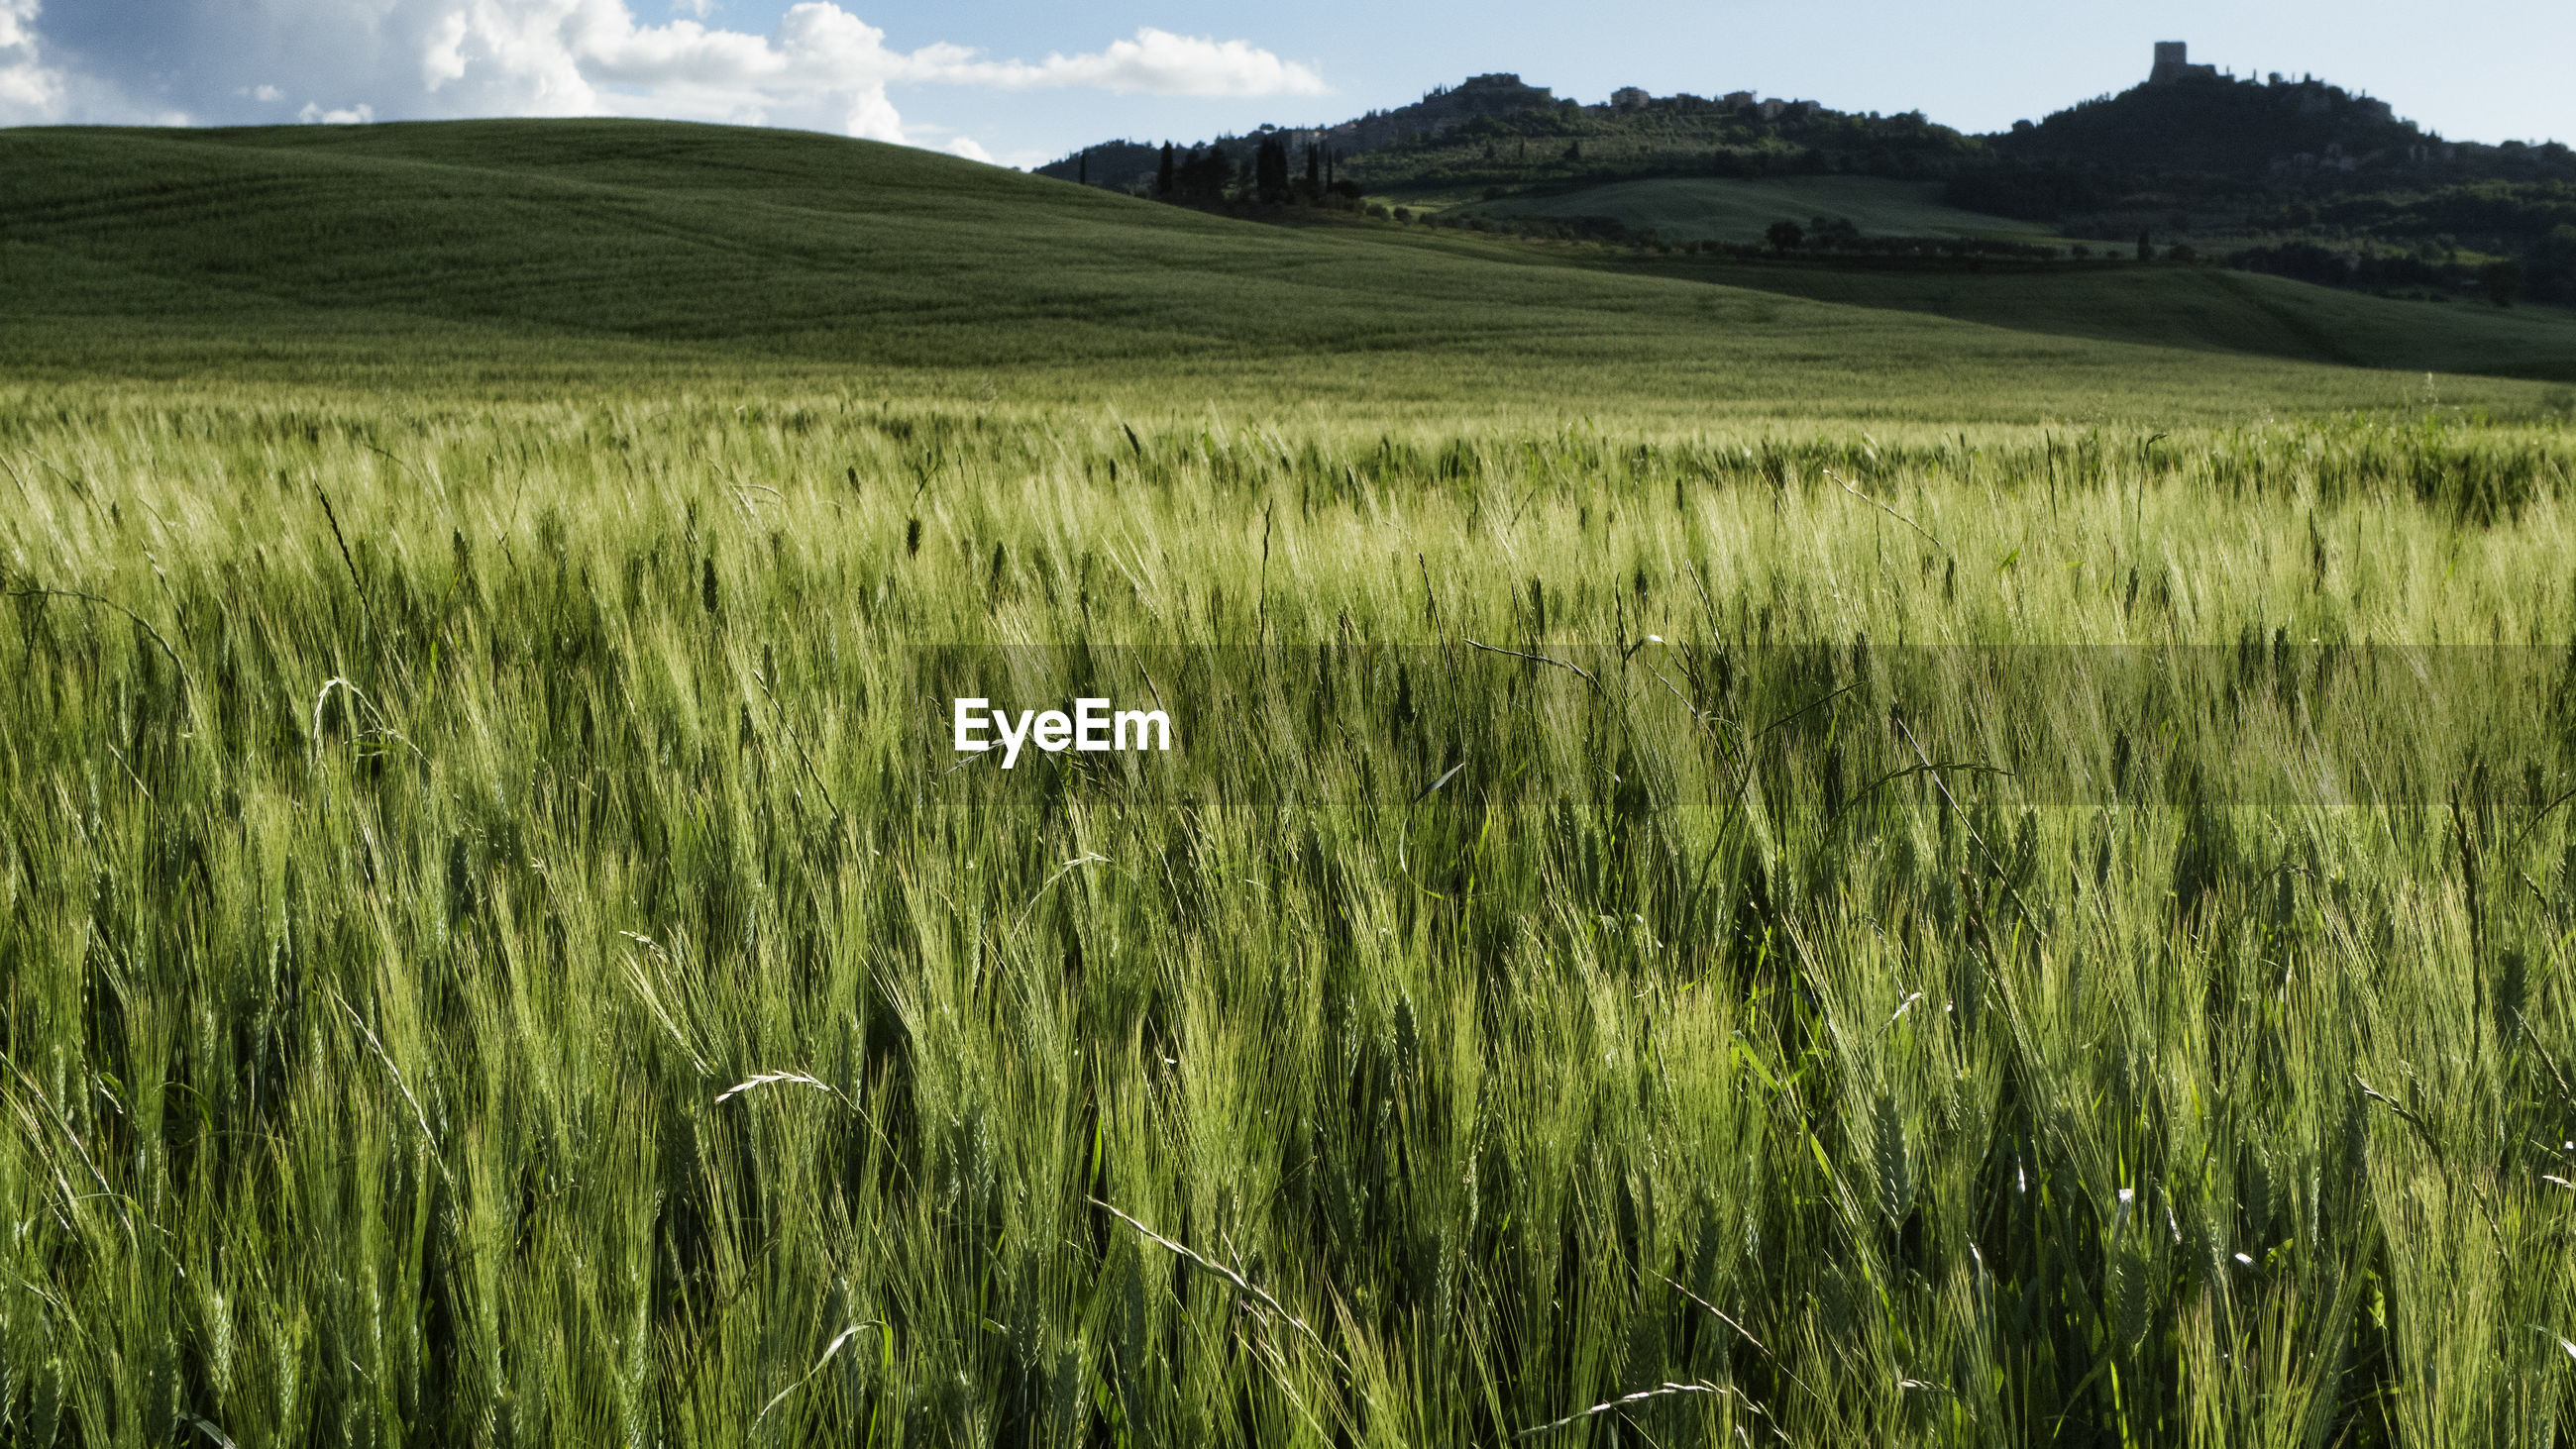 SCENIC VIEW OF FIELD